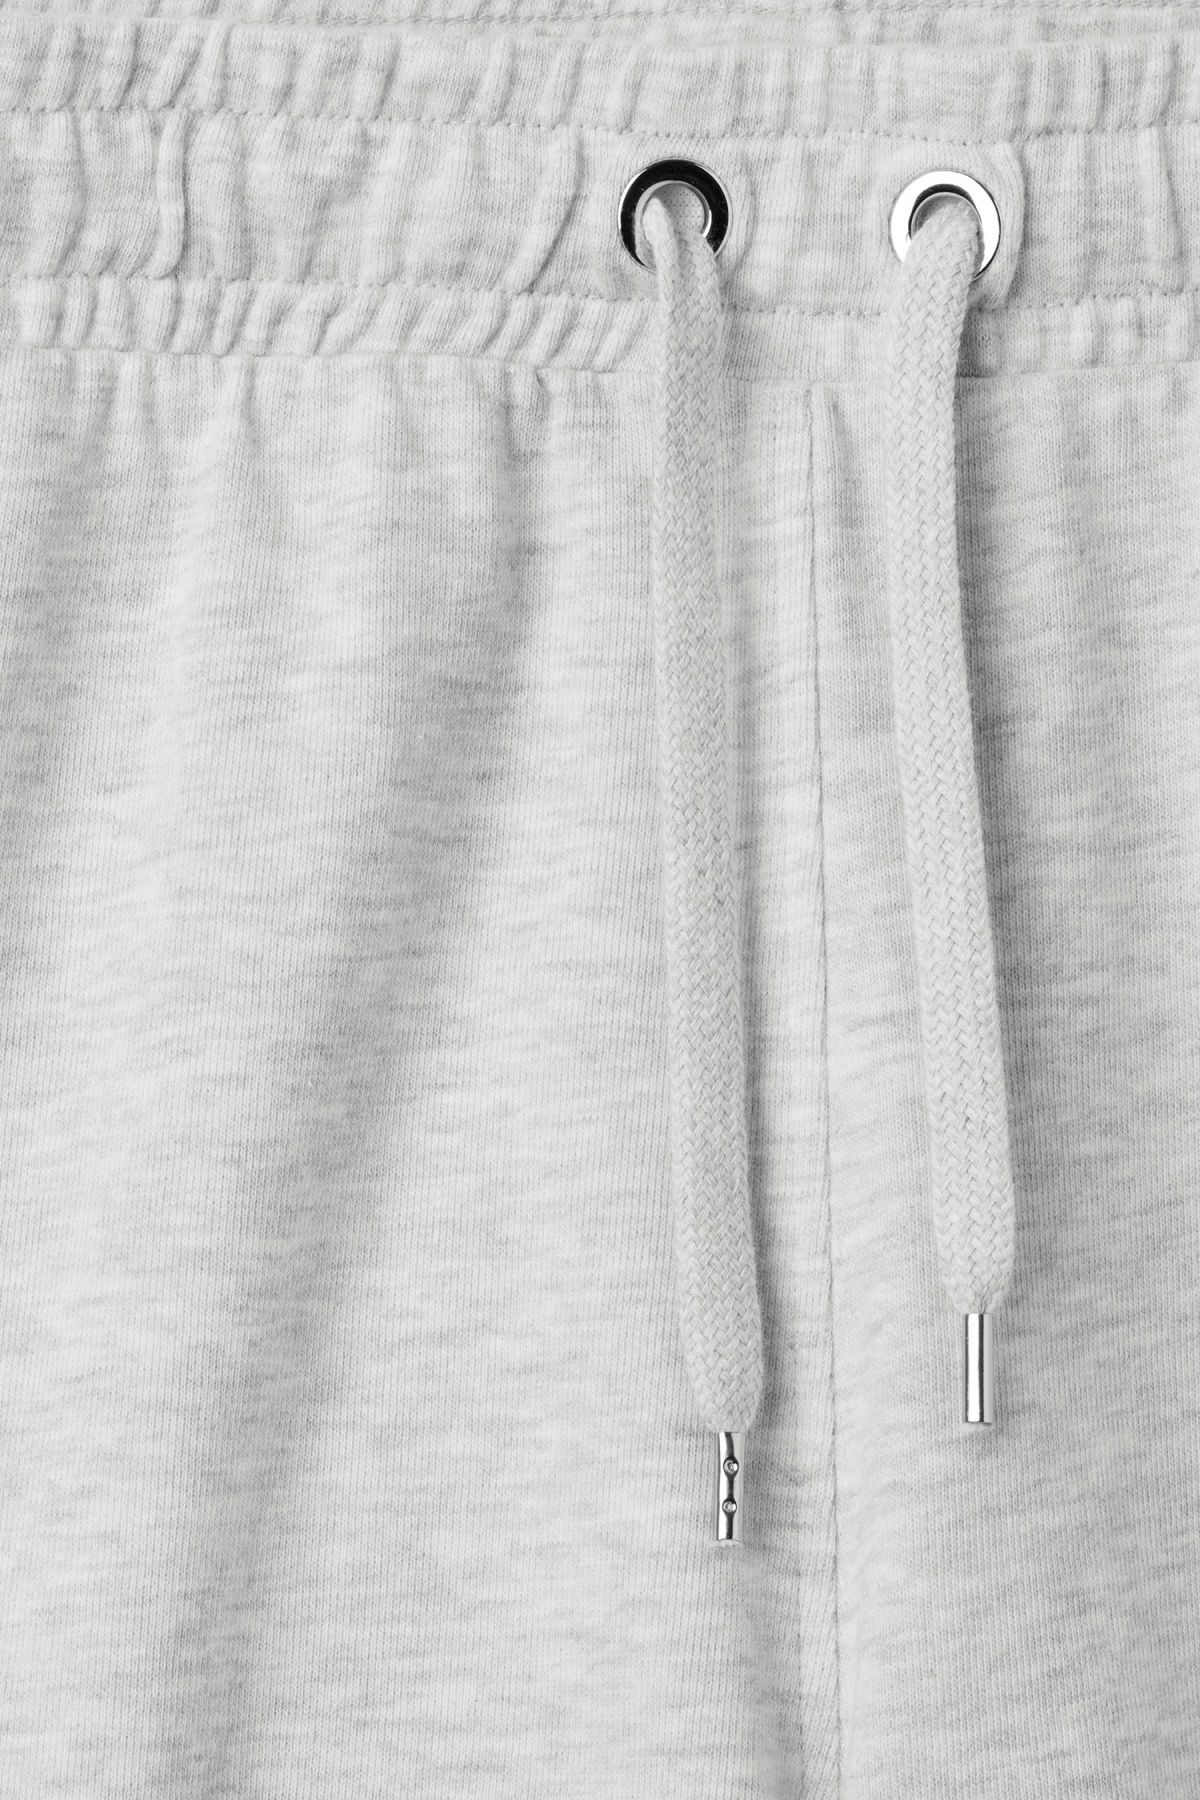 Detailed image of Weekday hurdle shorts in grey